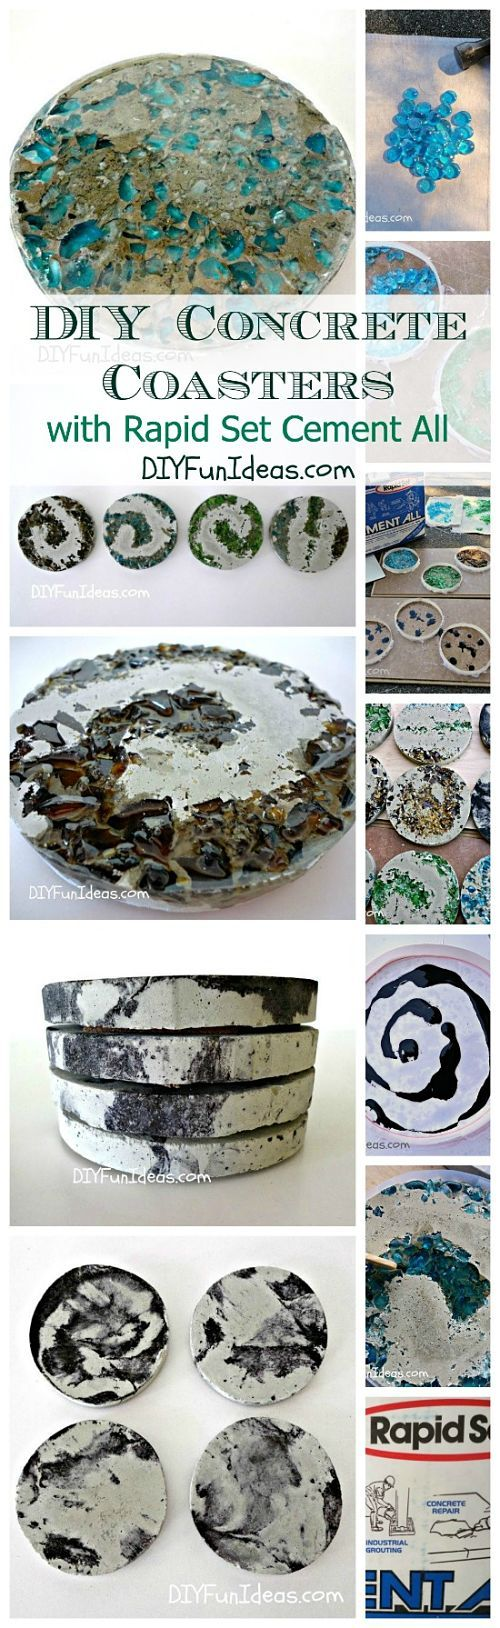 HOW TO MAKE CRUSHED GLASS & TIE-DYE CONCRETE COASTERS! from DIYFunIdeas.com